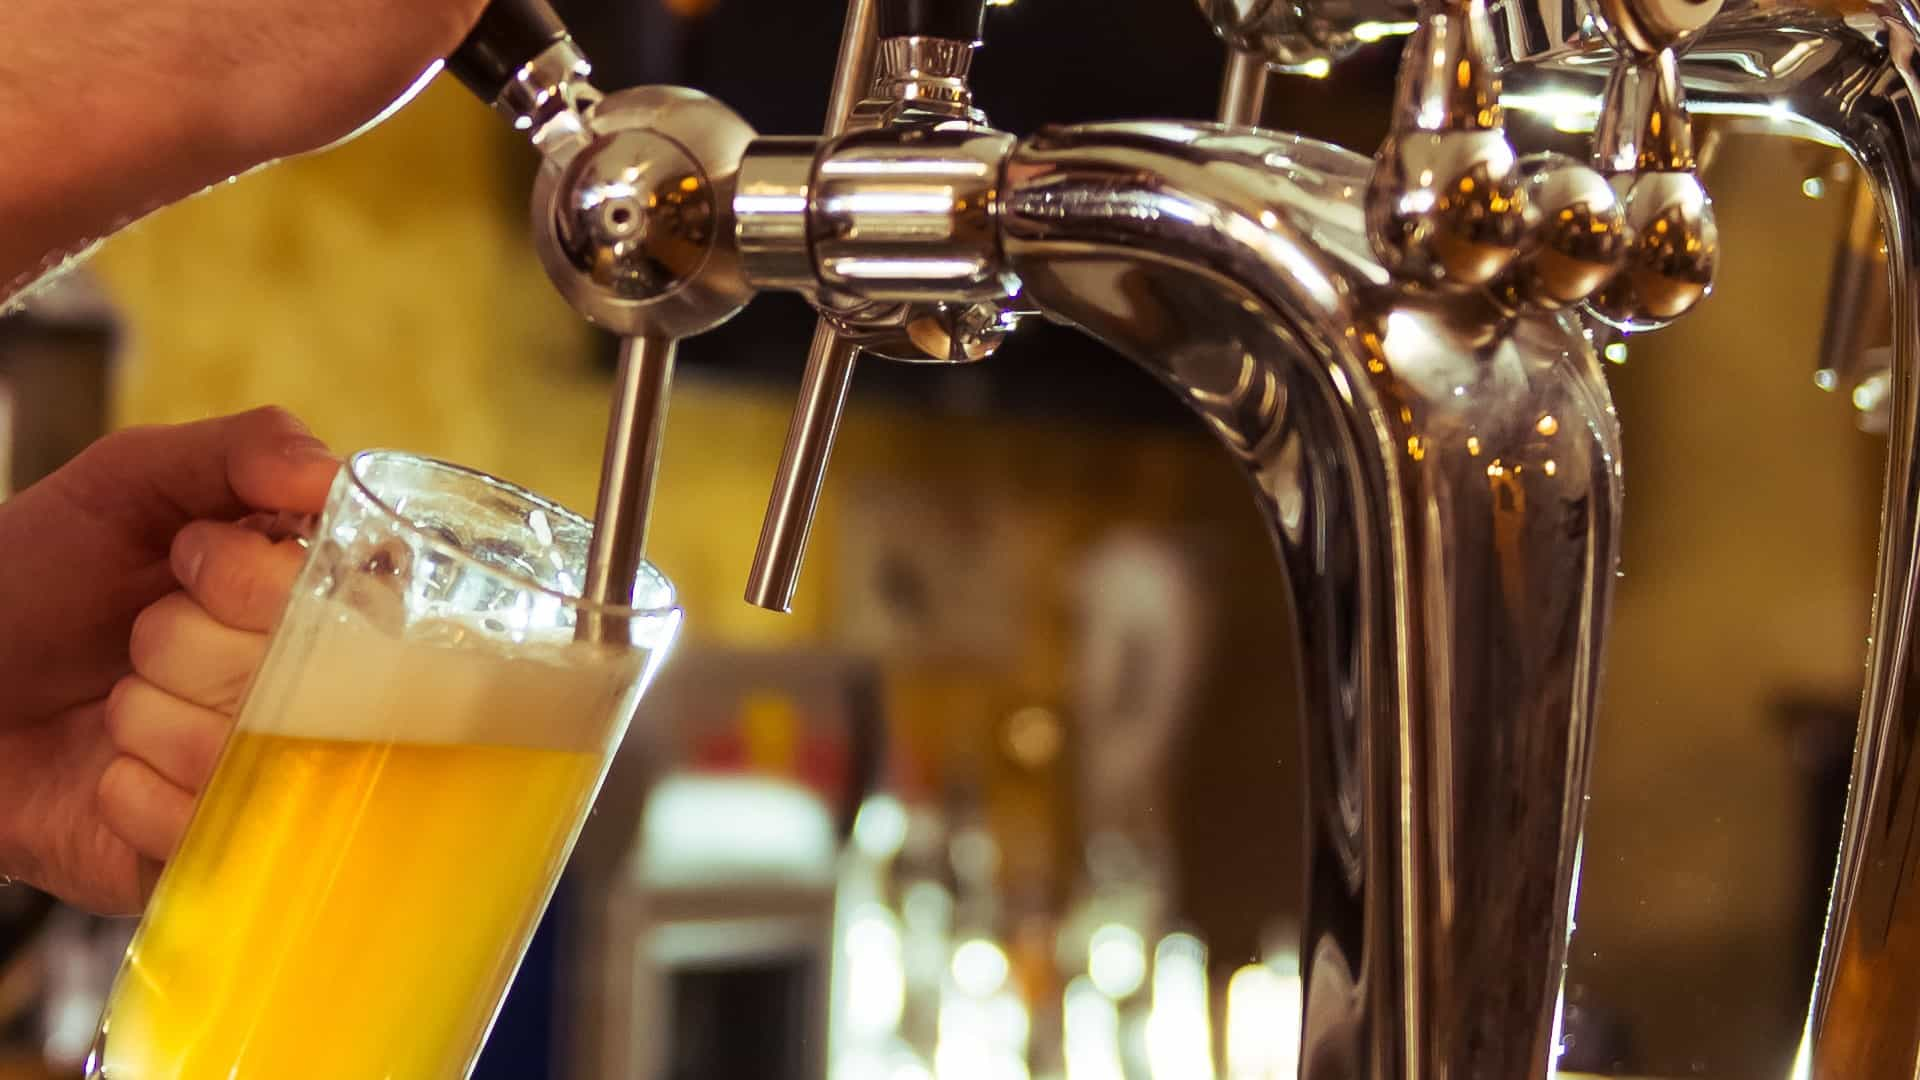 Best Beer Dispenser 2021: Shopping Guide & Review